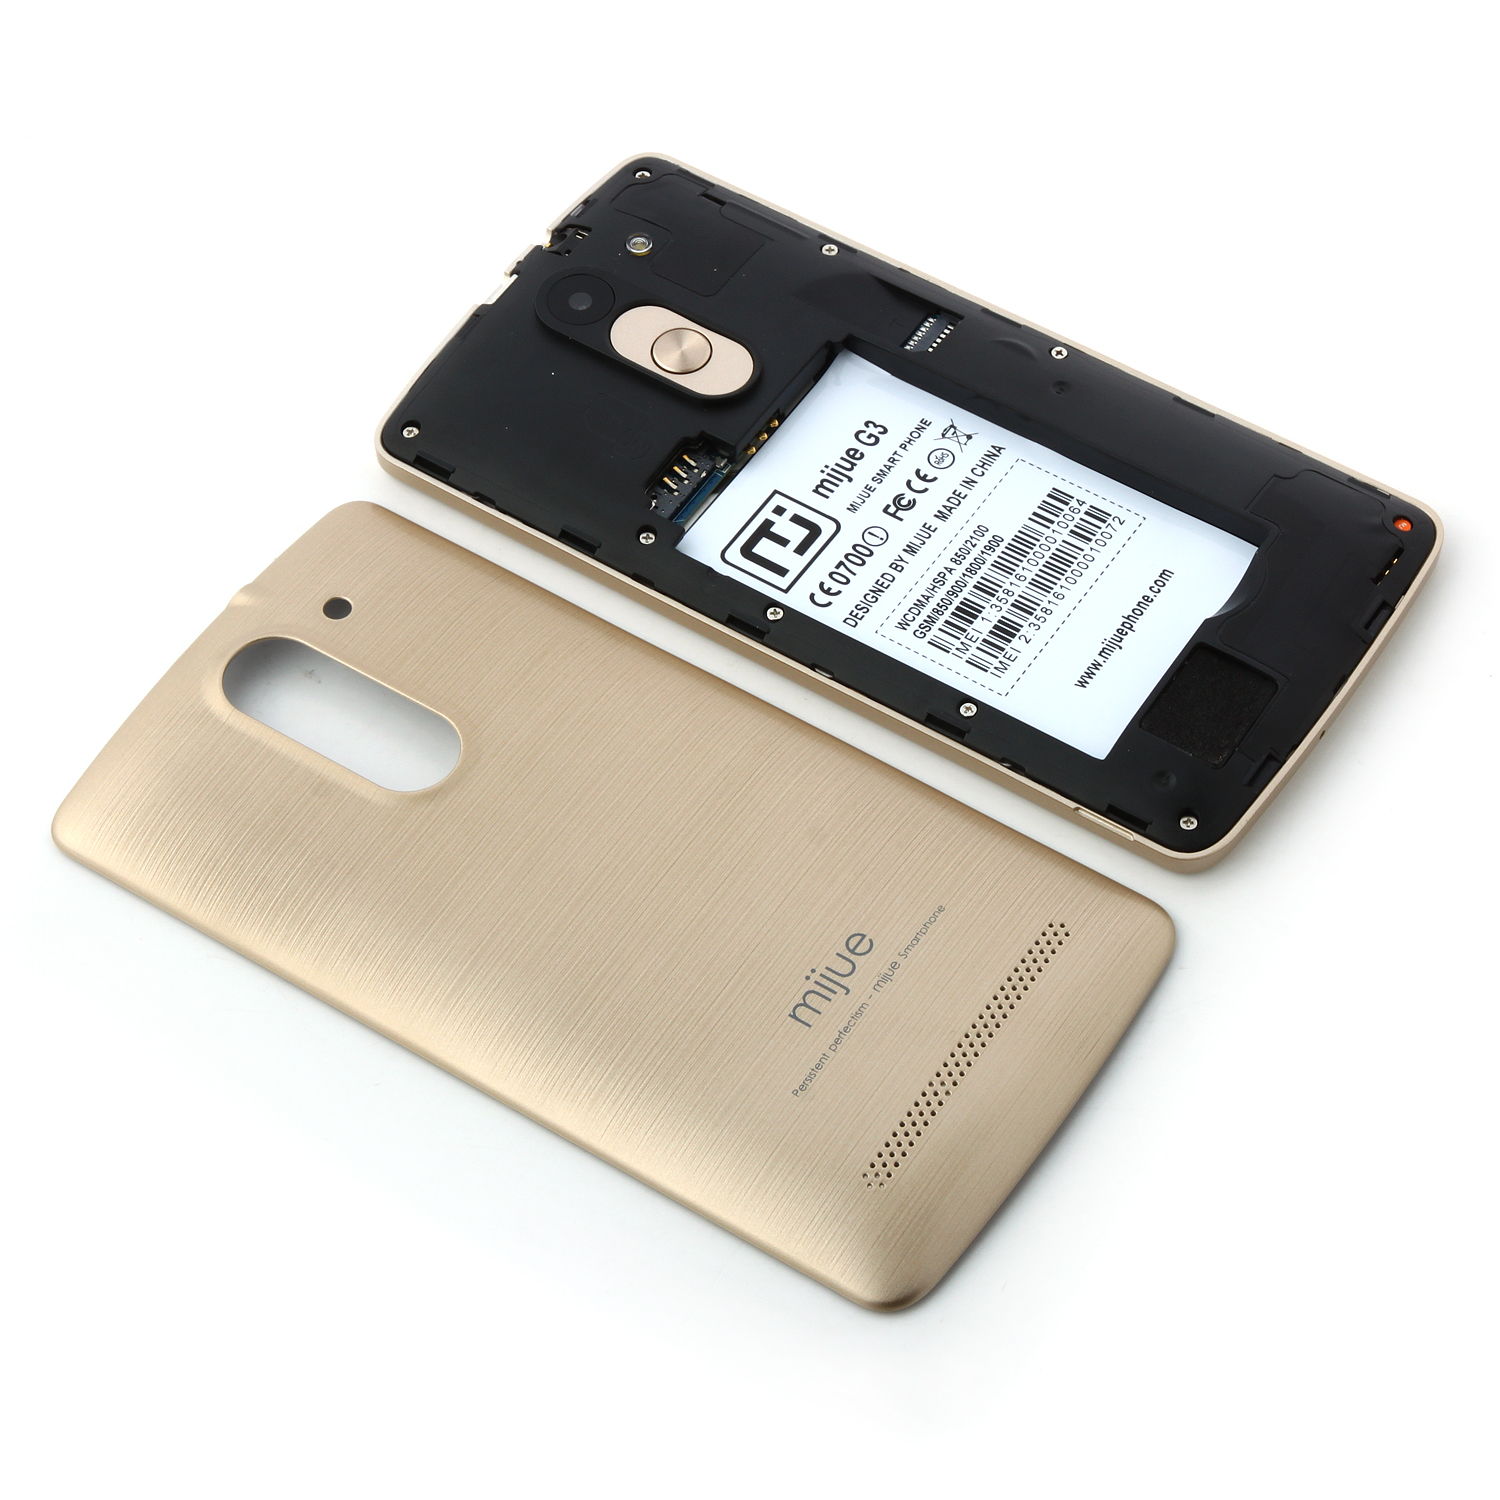 Mijue G3 Smartphone Android 4.4 MTK6572 Dual Core 5.0 Inch Smart Wake Air Gesture Gold